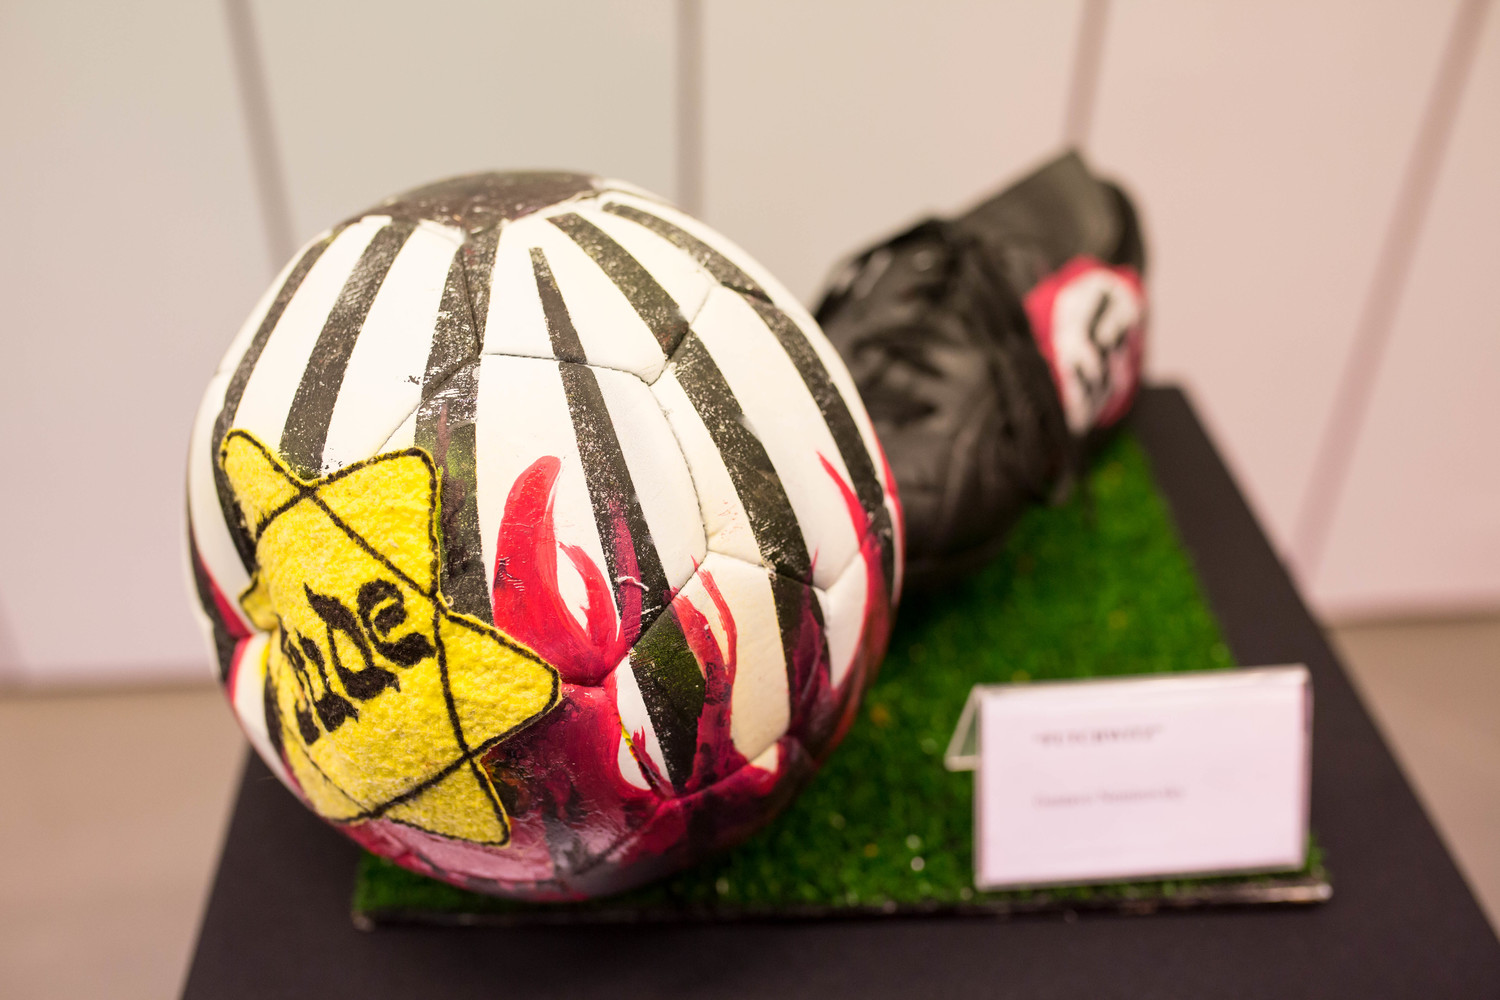 The exhibition at River Plate's museum includes six illustrated soccer balls. This one was done by Diego Rodríguez, Augusto Costhanzo, Sergio Langer, Rica Núñez and Gustavo Nemirovsky.